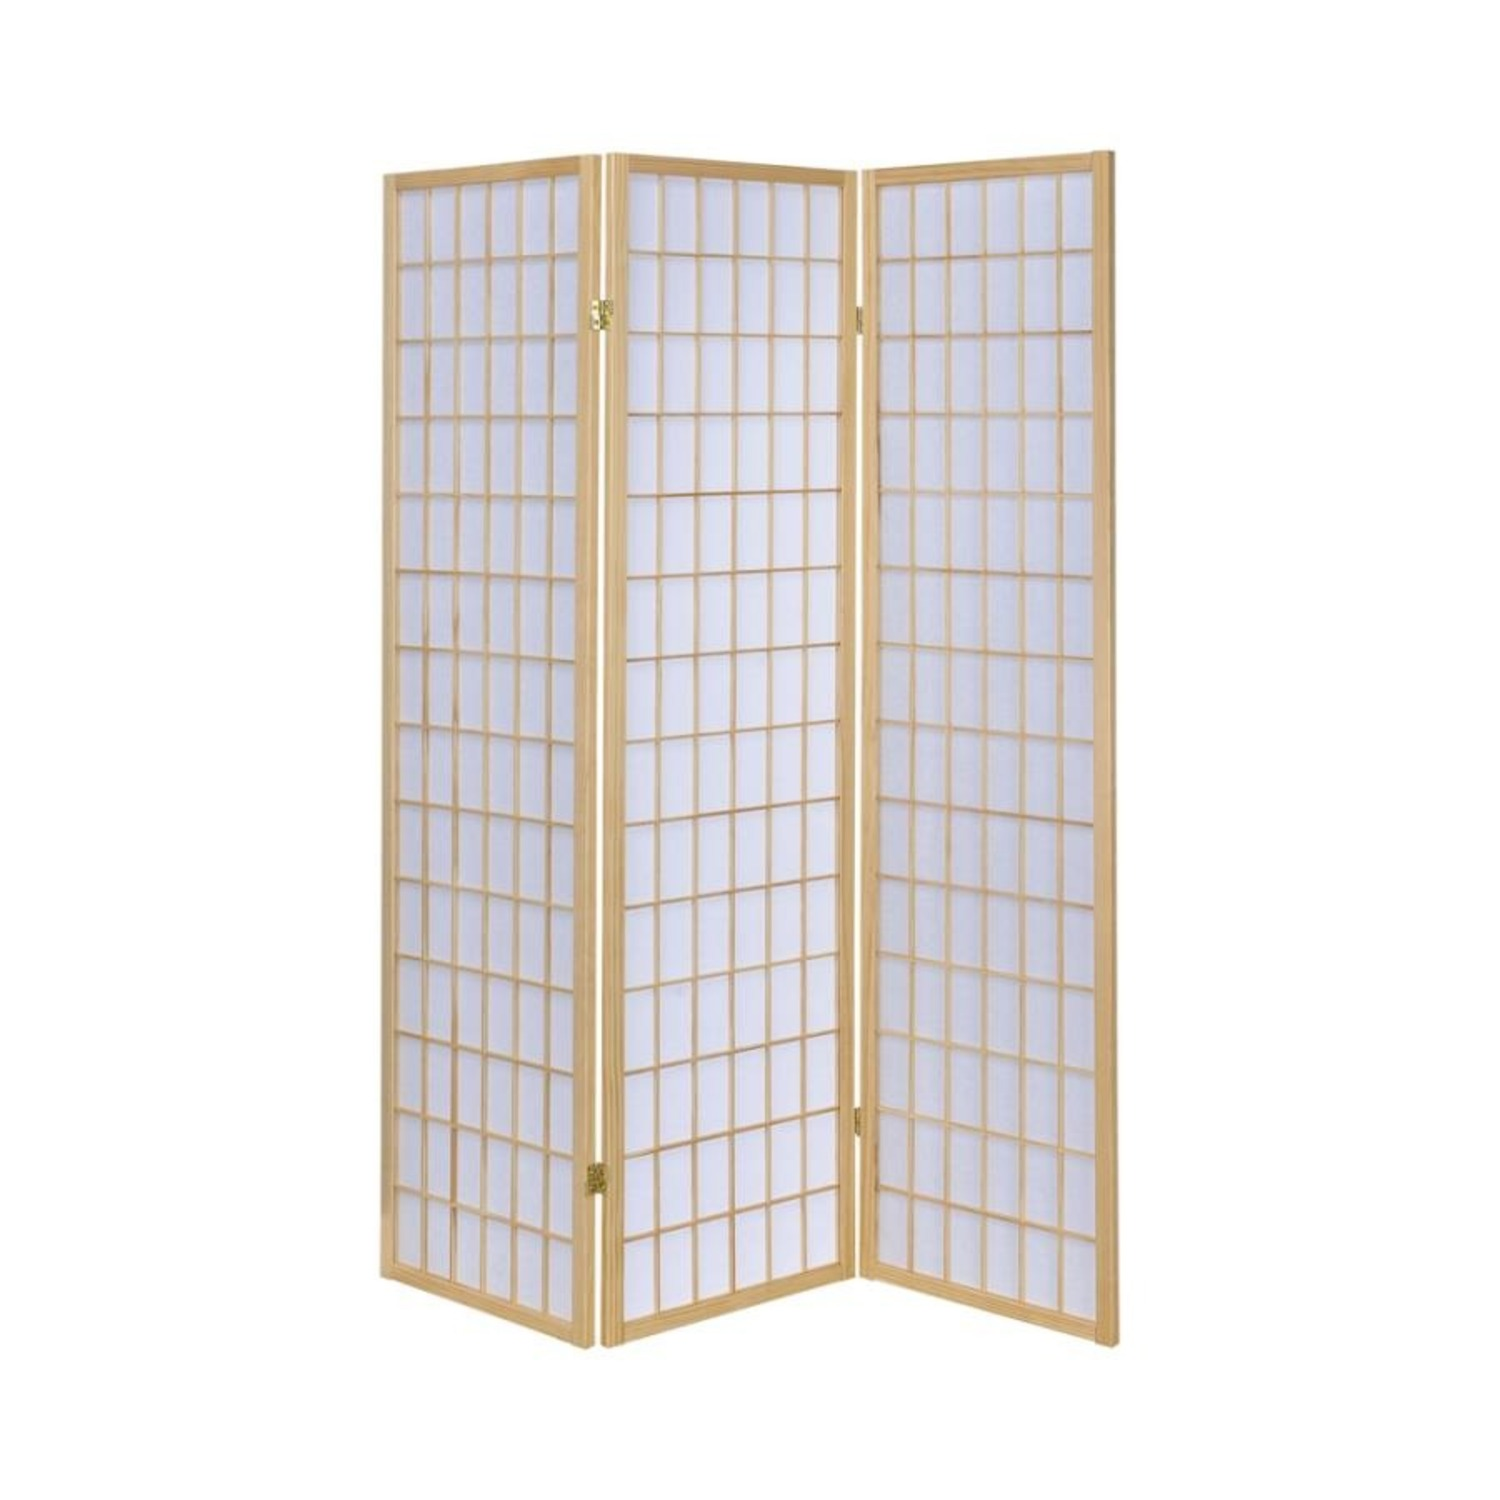 Screen In White Panels W/ Natural Wood Borders - image-0